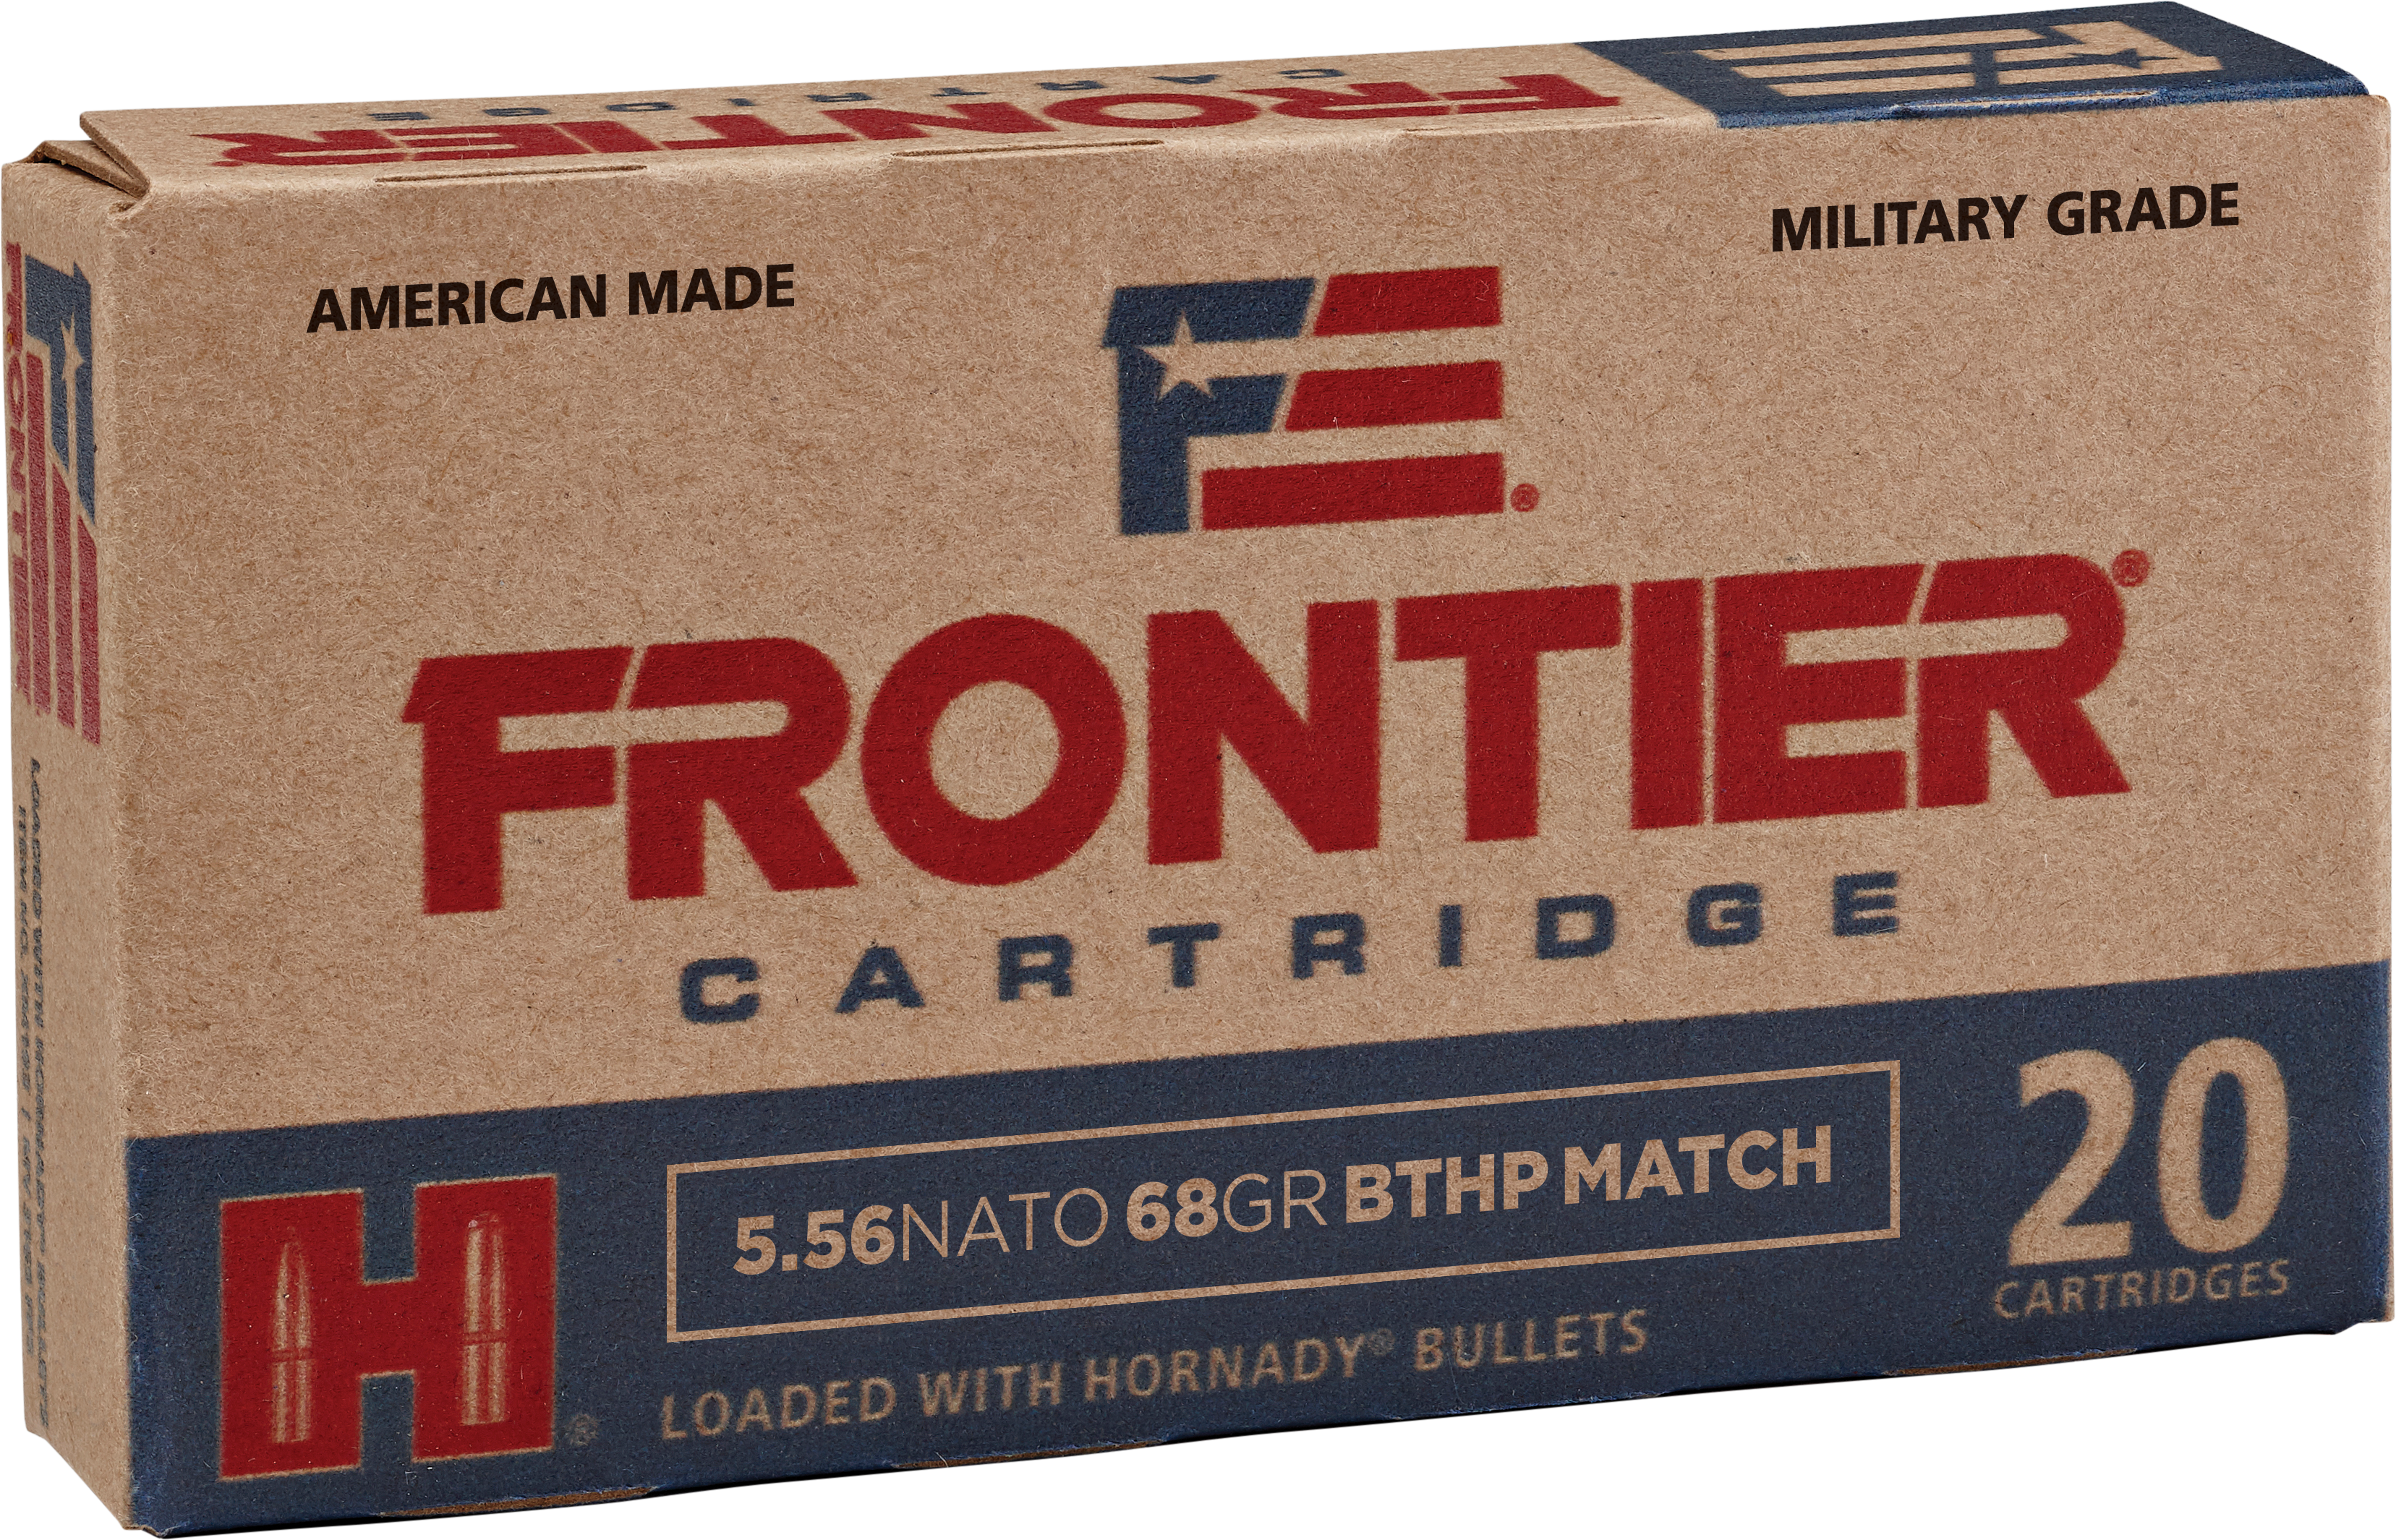 Frontier Cartridge Military Grade Ammunition 5.56x45mm NATO 68GR Hornady Hollow Point Boat Tail Per 20